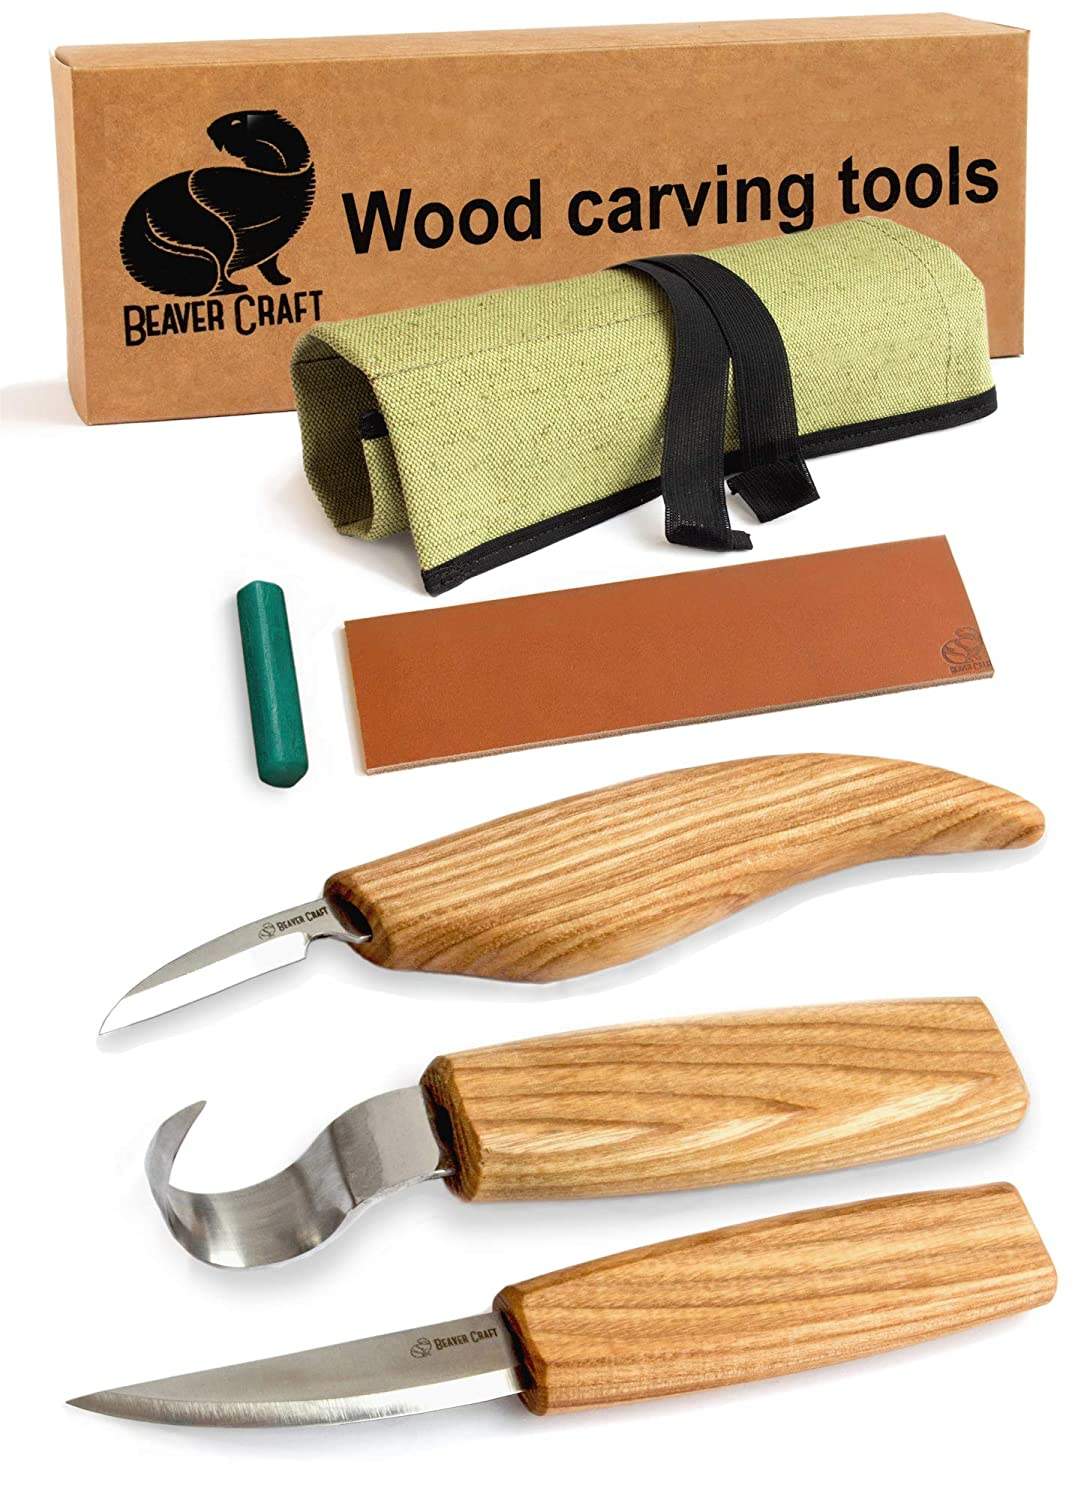 BeaverCraft S13 Wood Carving Tools Set for Spoon Carving 3 Knives in Tools  Roll Leather Strop and Polishing Compound Hook Sloyd Detail Knife